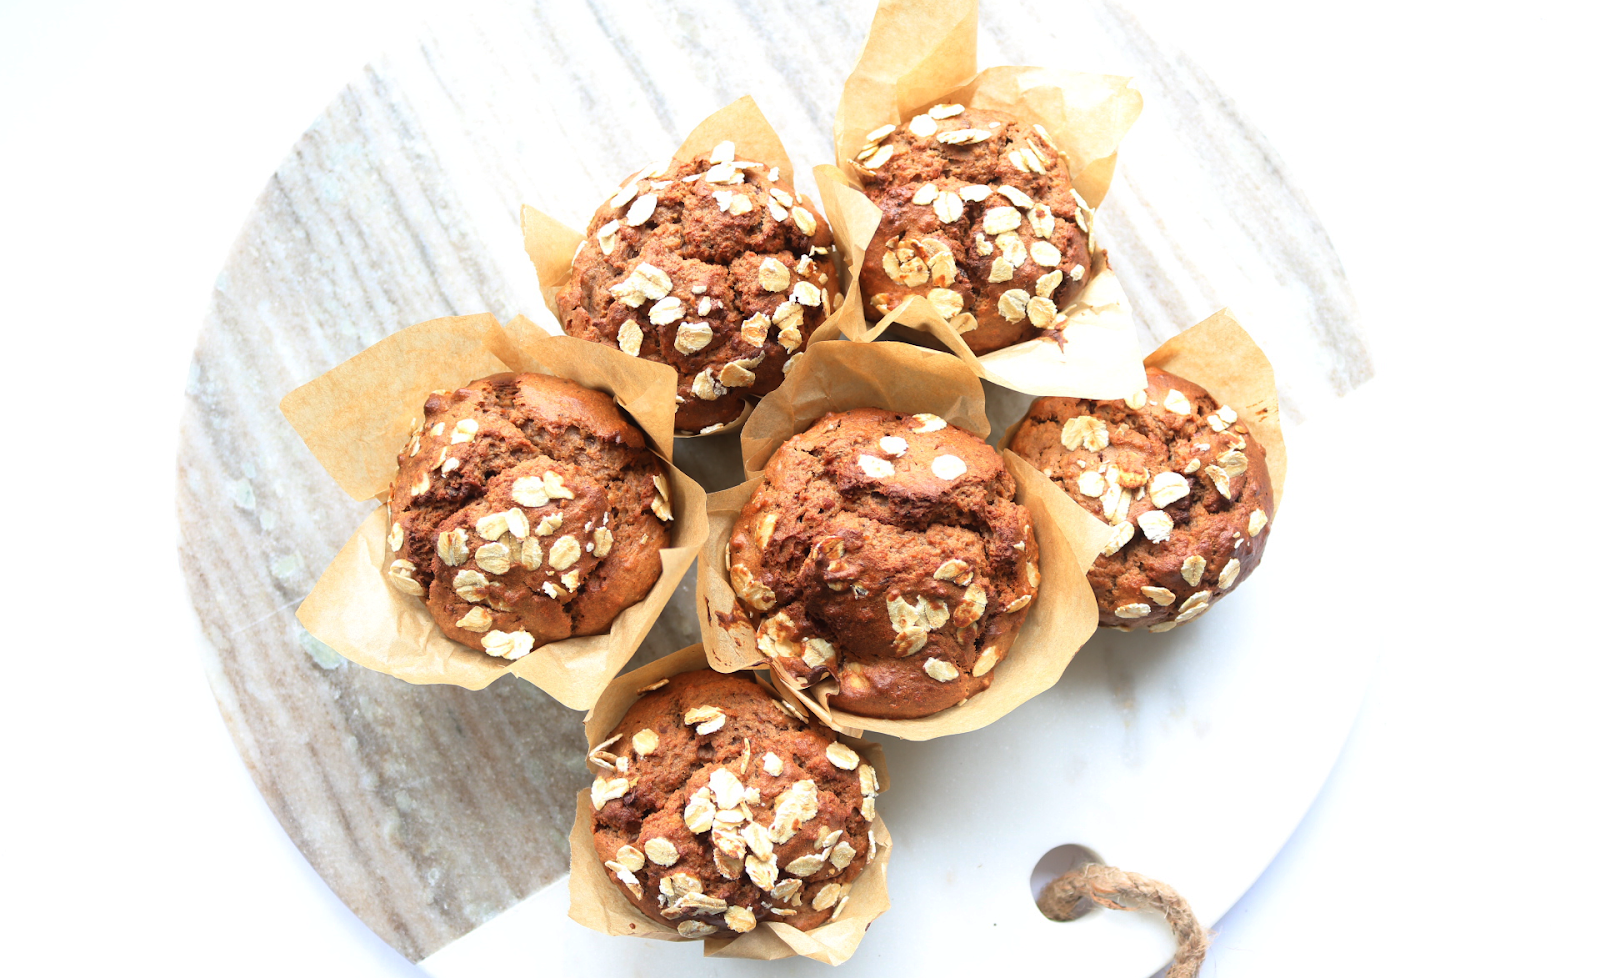 Peanut Butter, Oat & Banana Breakfast Muffins (Vegetarian recipe)